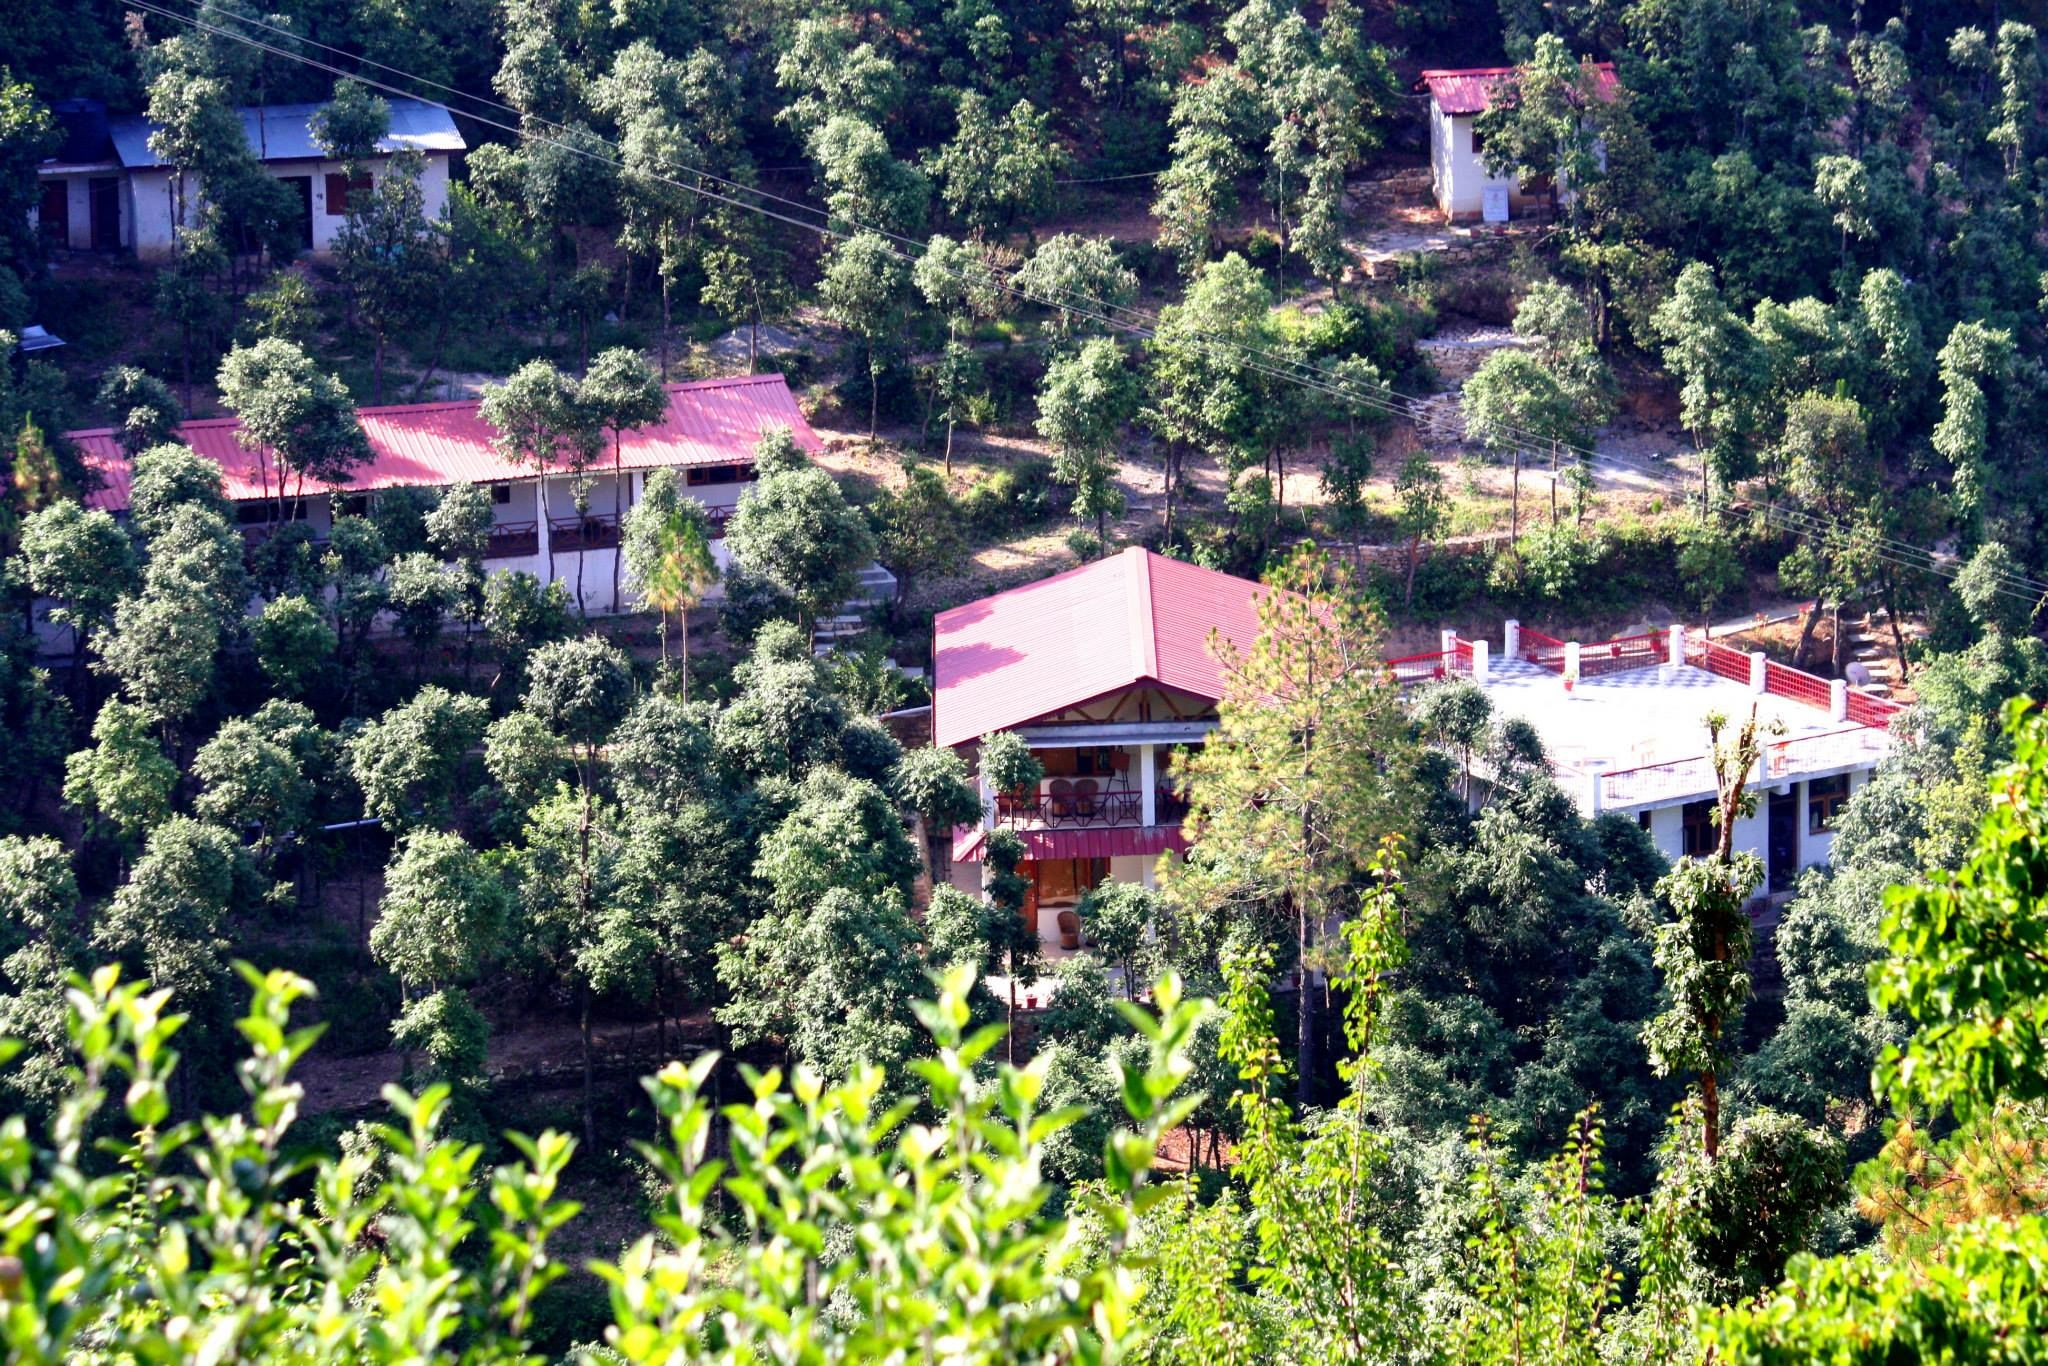 Popular Sightseeing of Mukteshwar and Look into Its